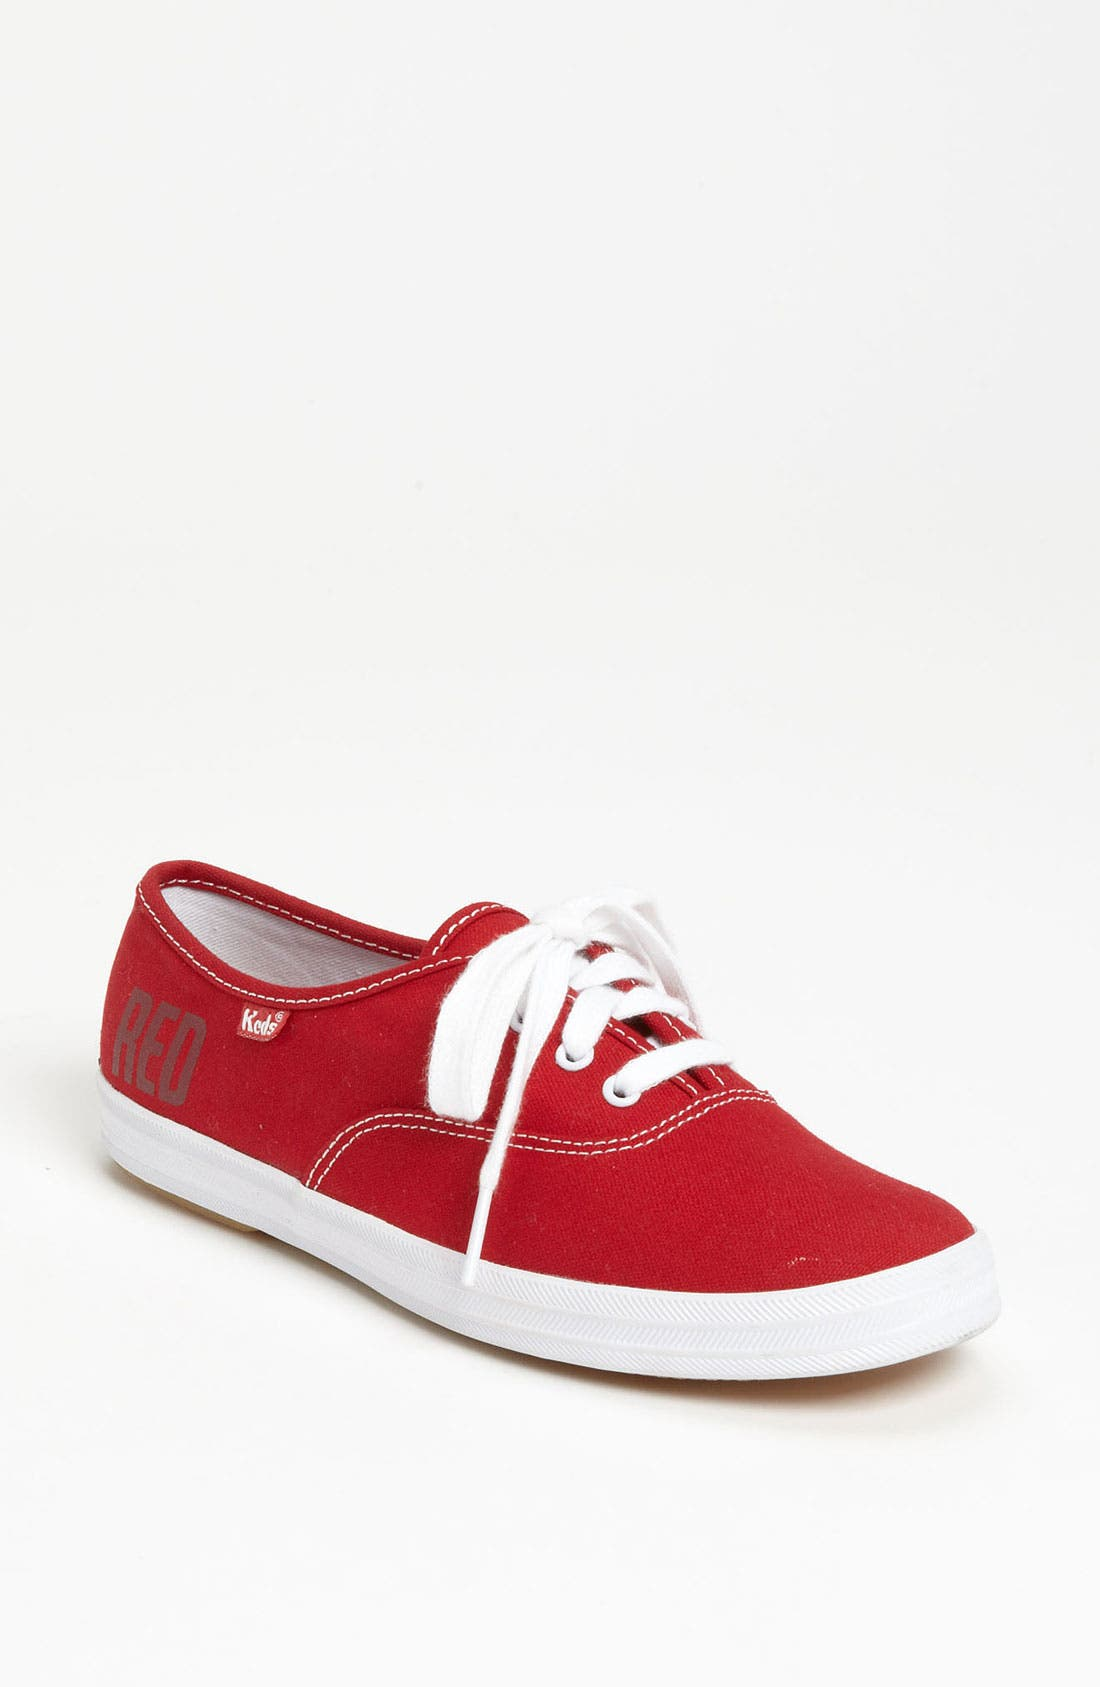 Alternate Image 1 Selected - Keds® Taylor Swift 'RED' Champion Sneaker (Limited Edition)